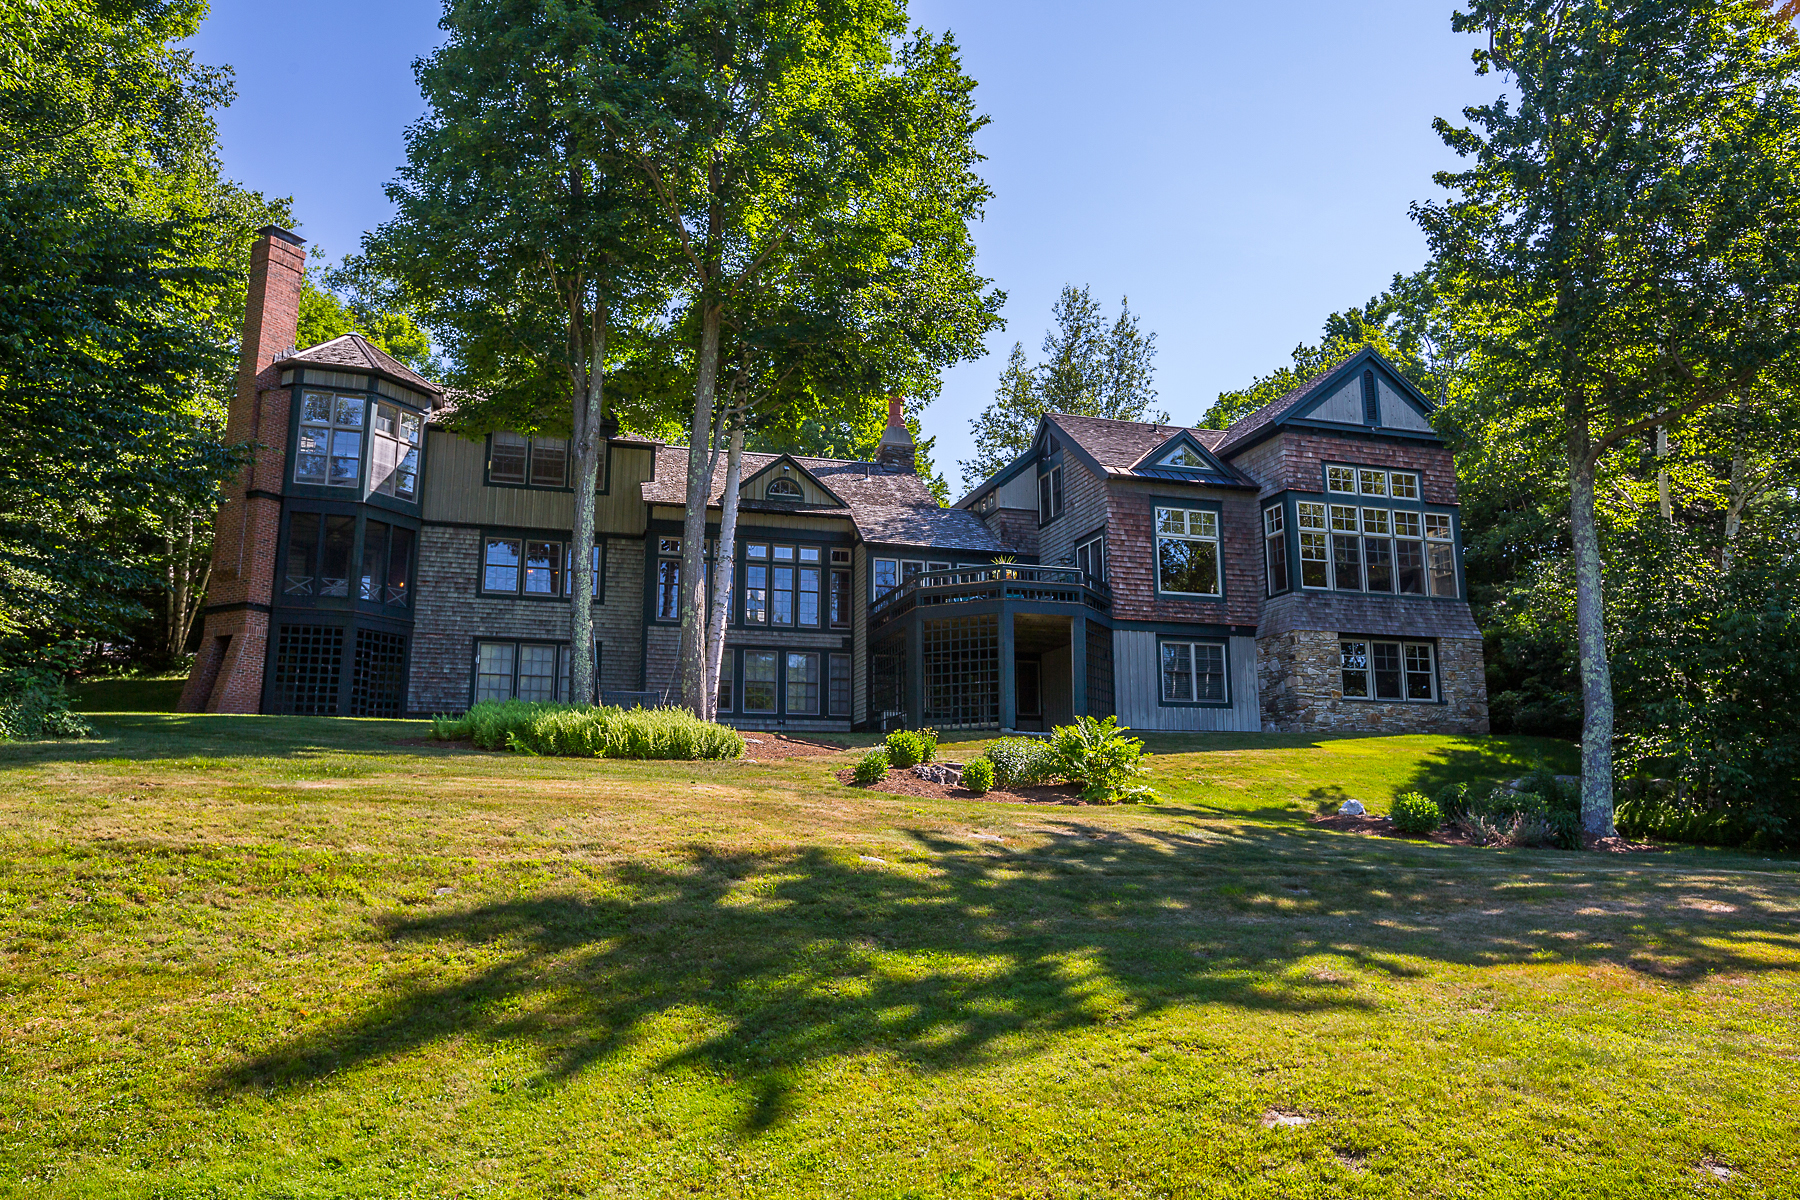 Residenza monofamiliare in vendita in 67 High Meadow, Stratton Mountain, Winhall, Vermont ,05340